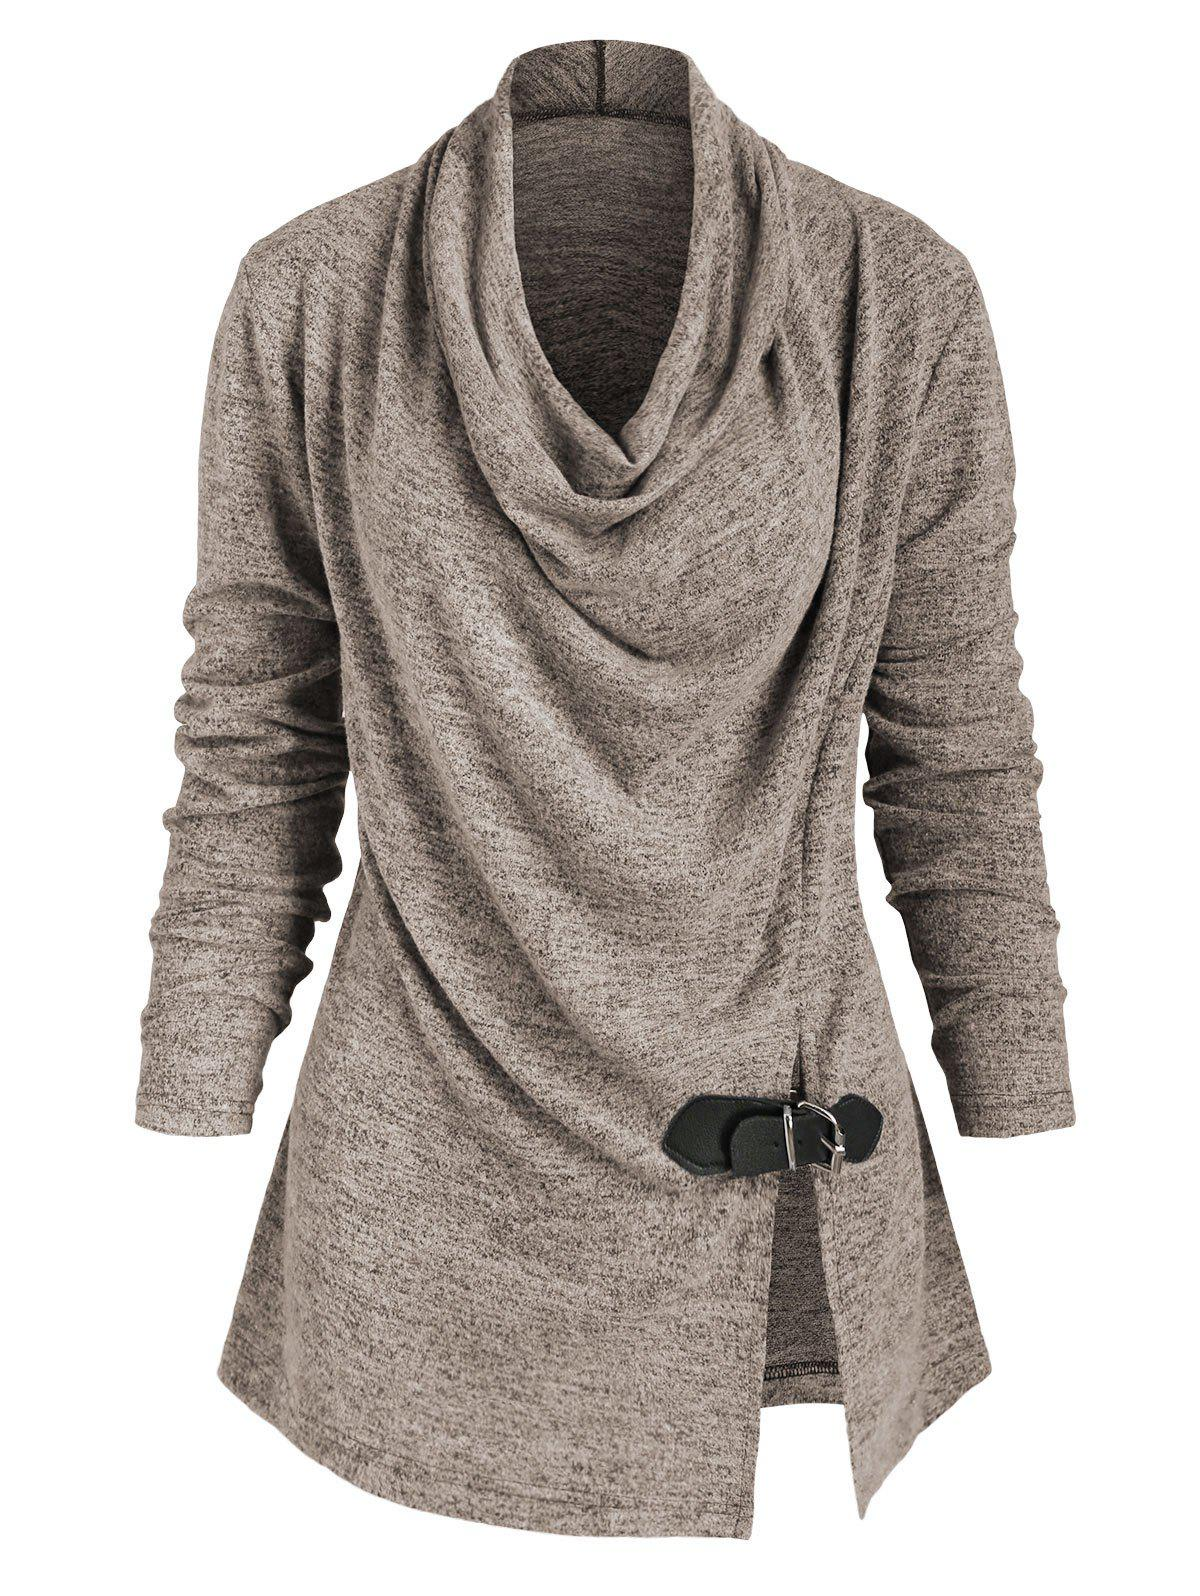 New Heather Slit Buckle Cowl Neck Knitwear